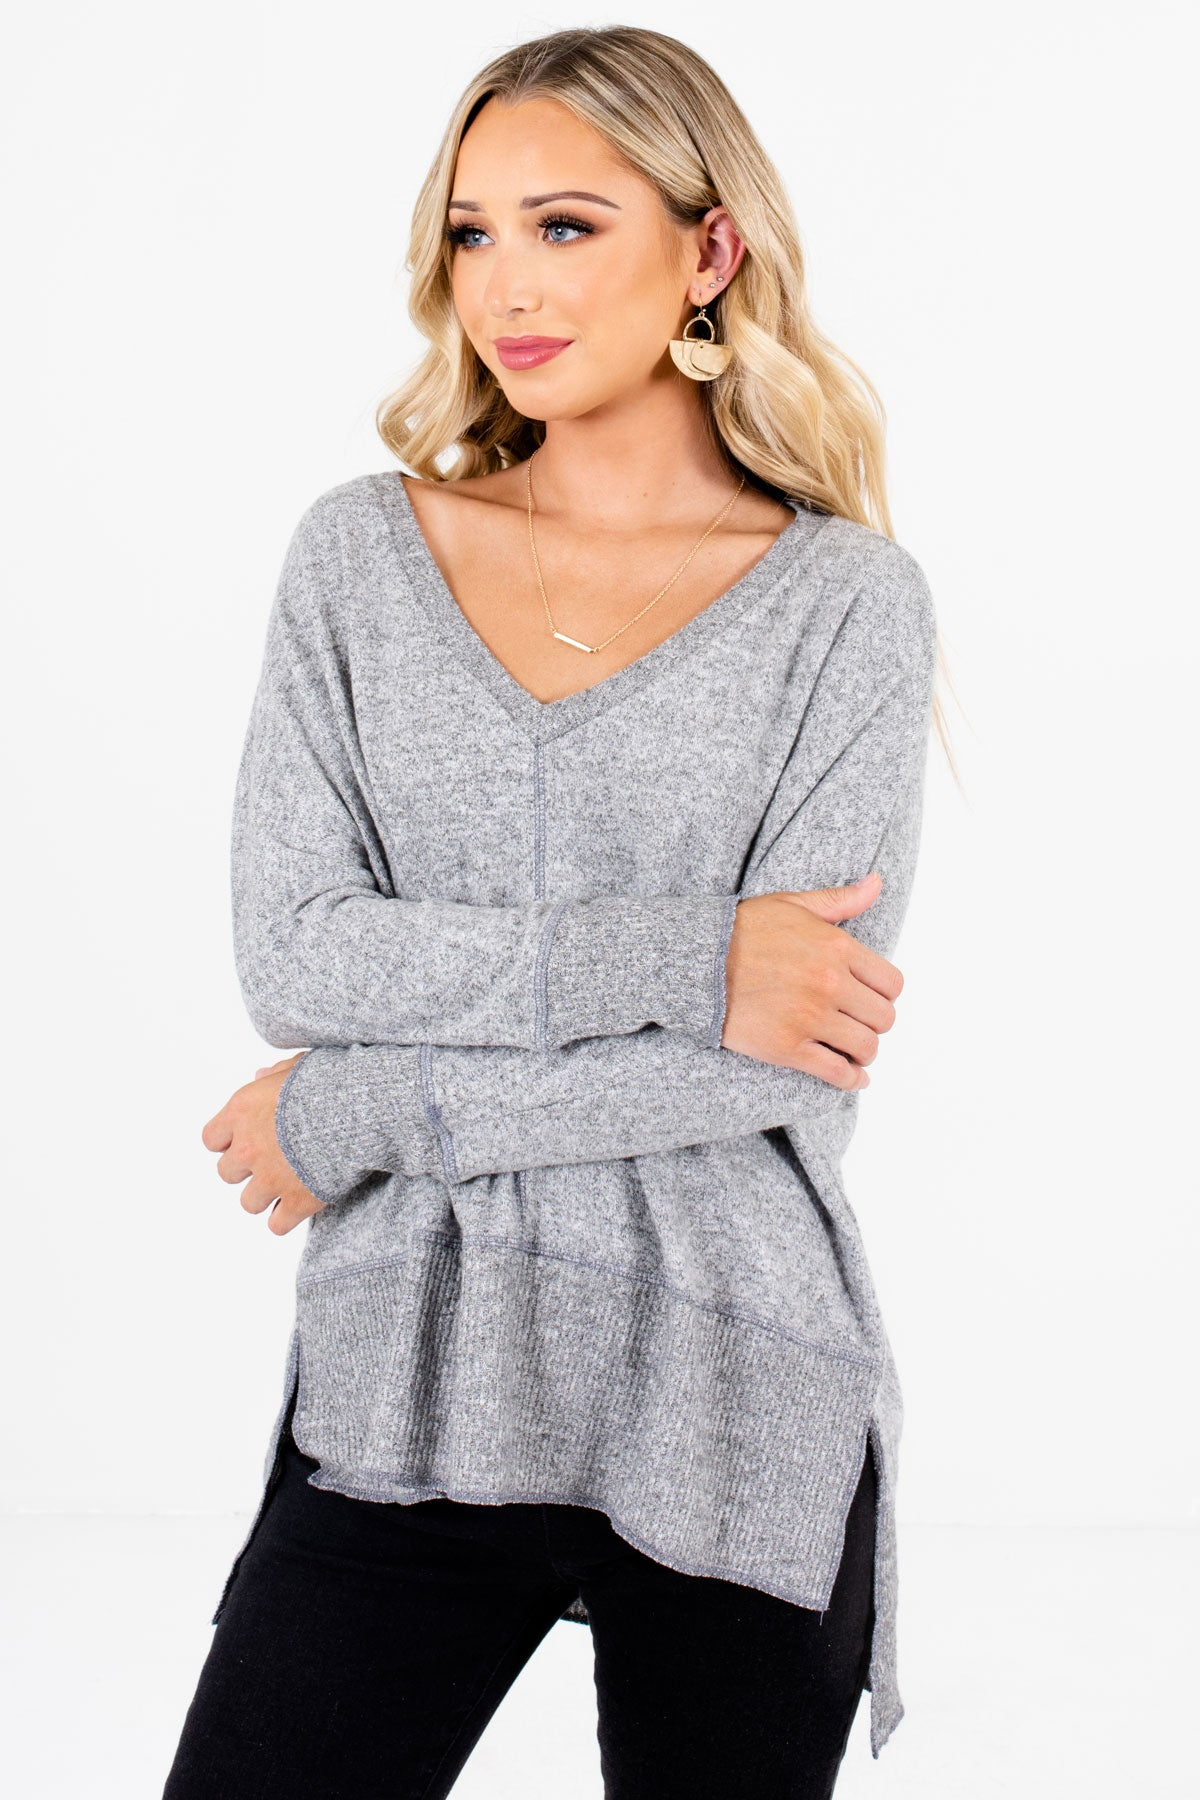 Heather Gray High-Quality Soft Material Boutique Tops for Women